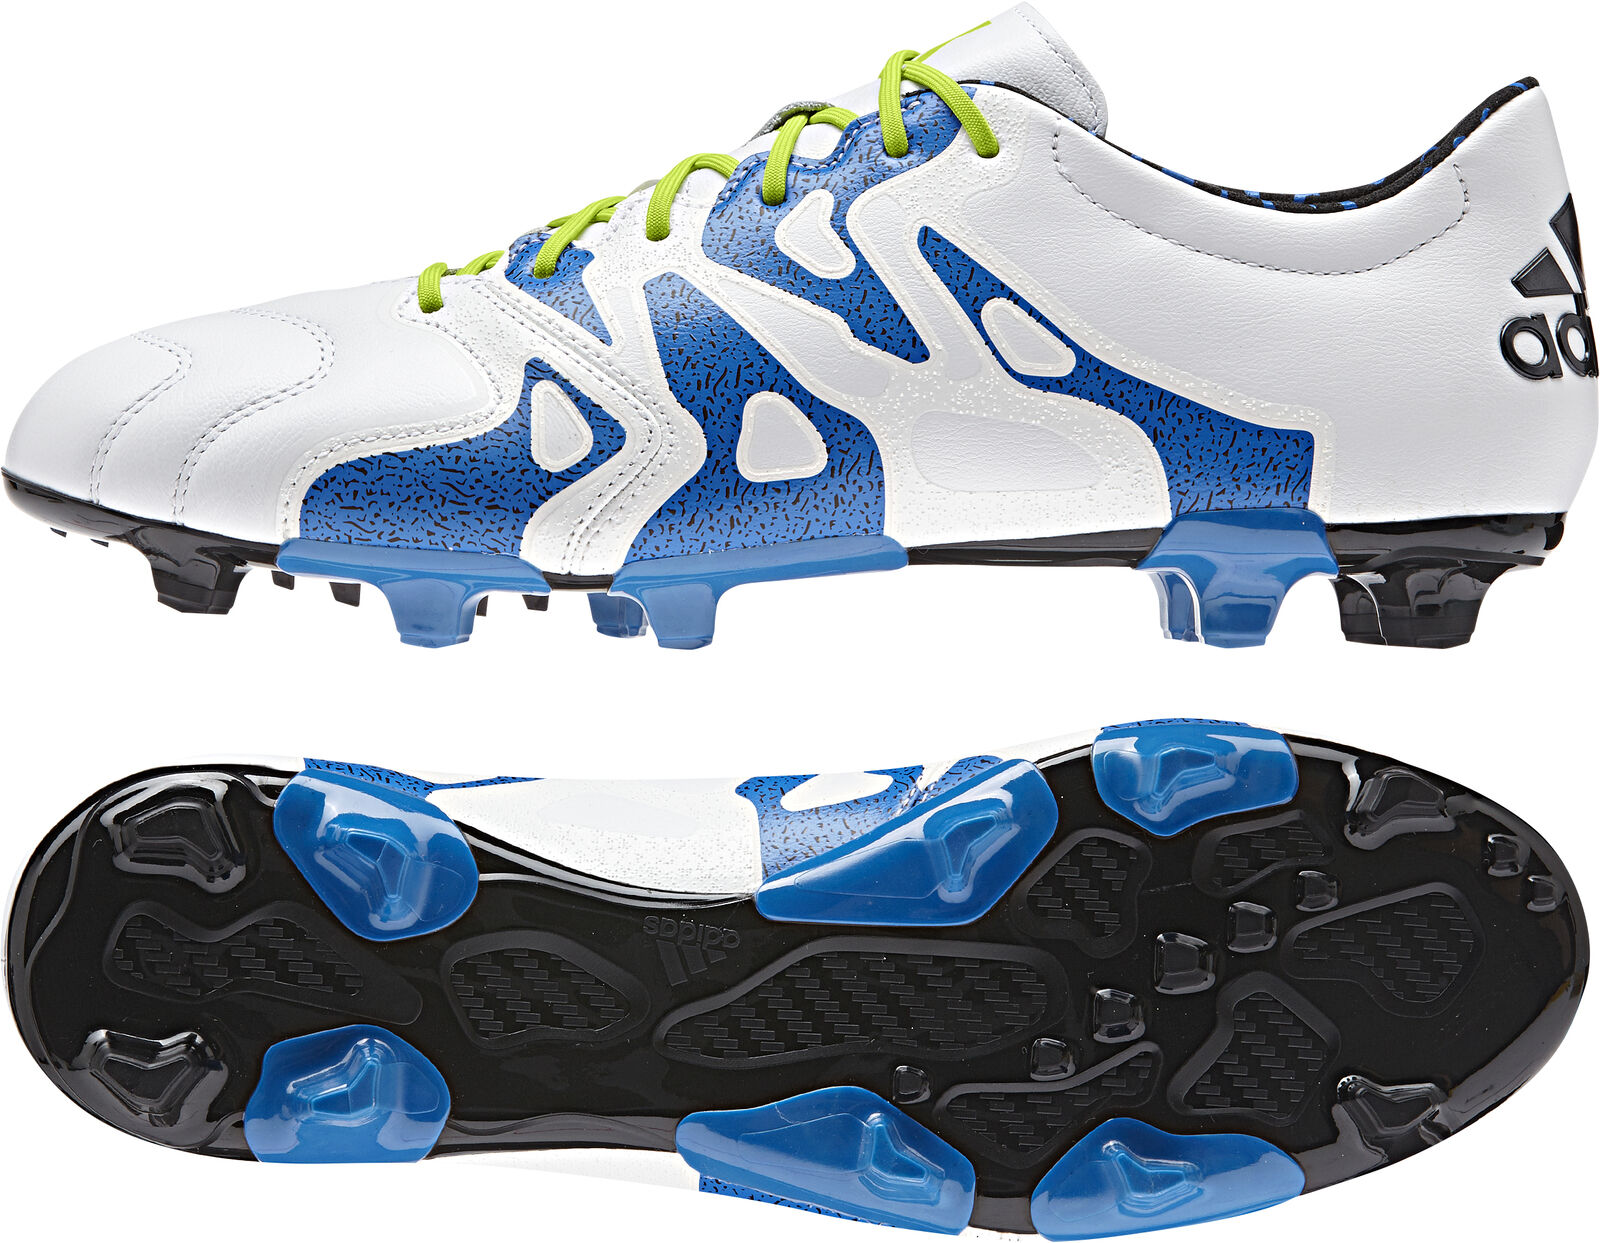 Adidas X 15.2 Firm Ground   AG Leather Leather Leather Mens Football Boots - White eb5923